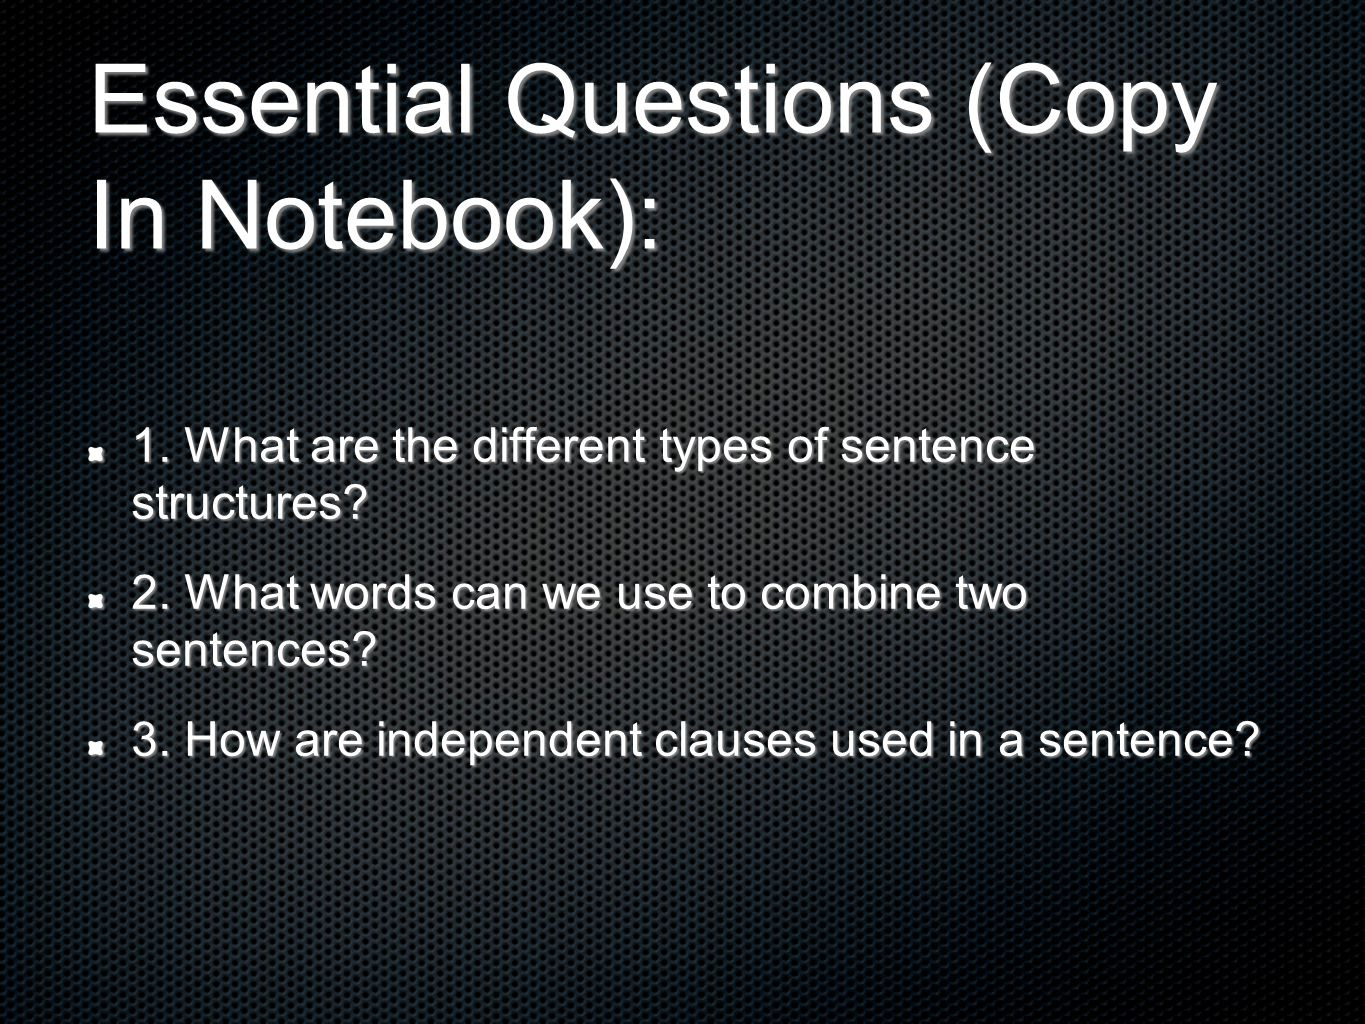 Essential Questions (Copy In Notebook):